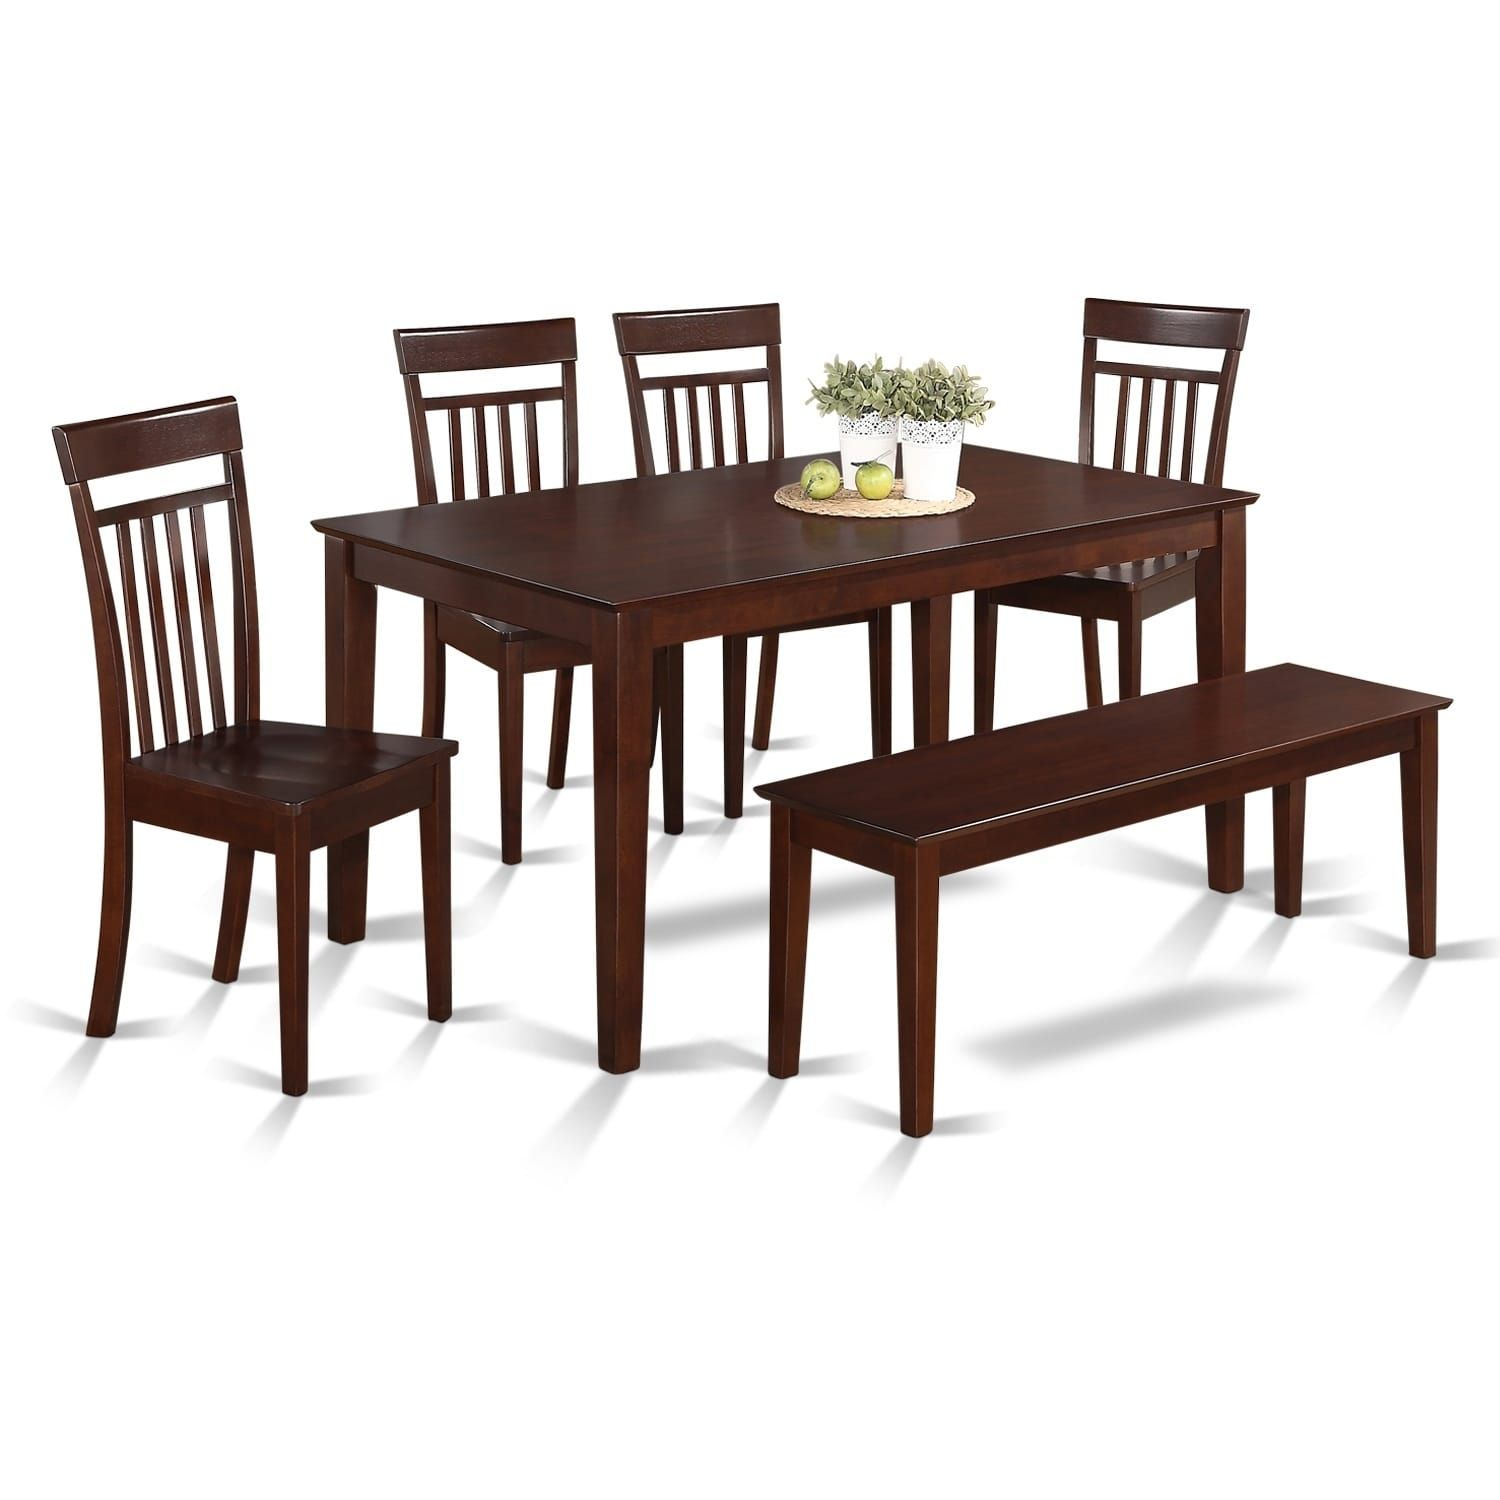 CAP6S-MAH-W 6 Pc Kitchen set - Table and 4 Kitchen Chairs and 1 ...